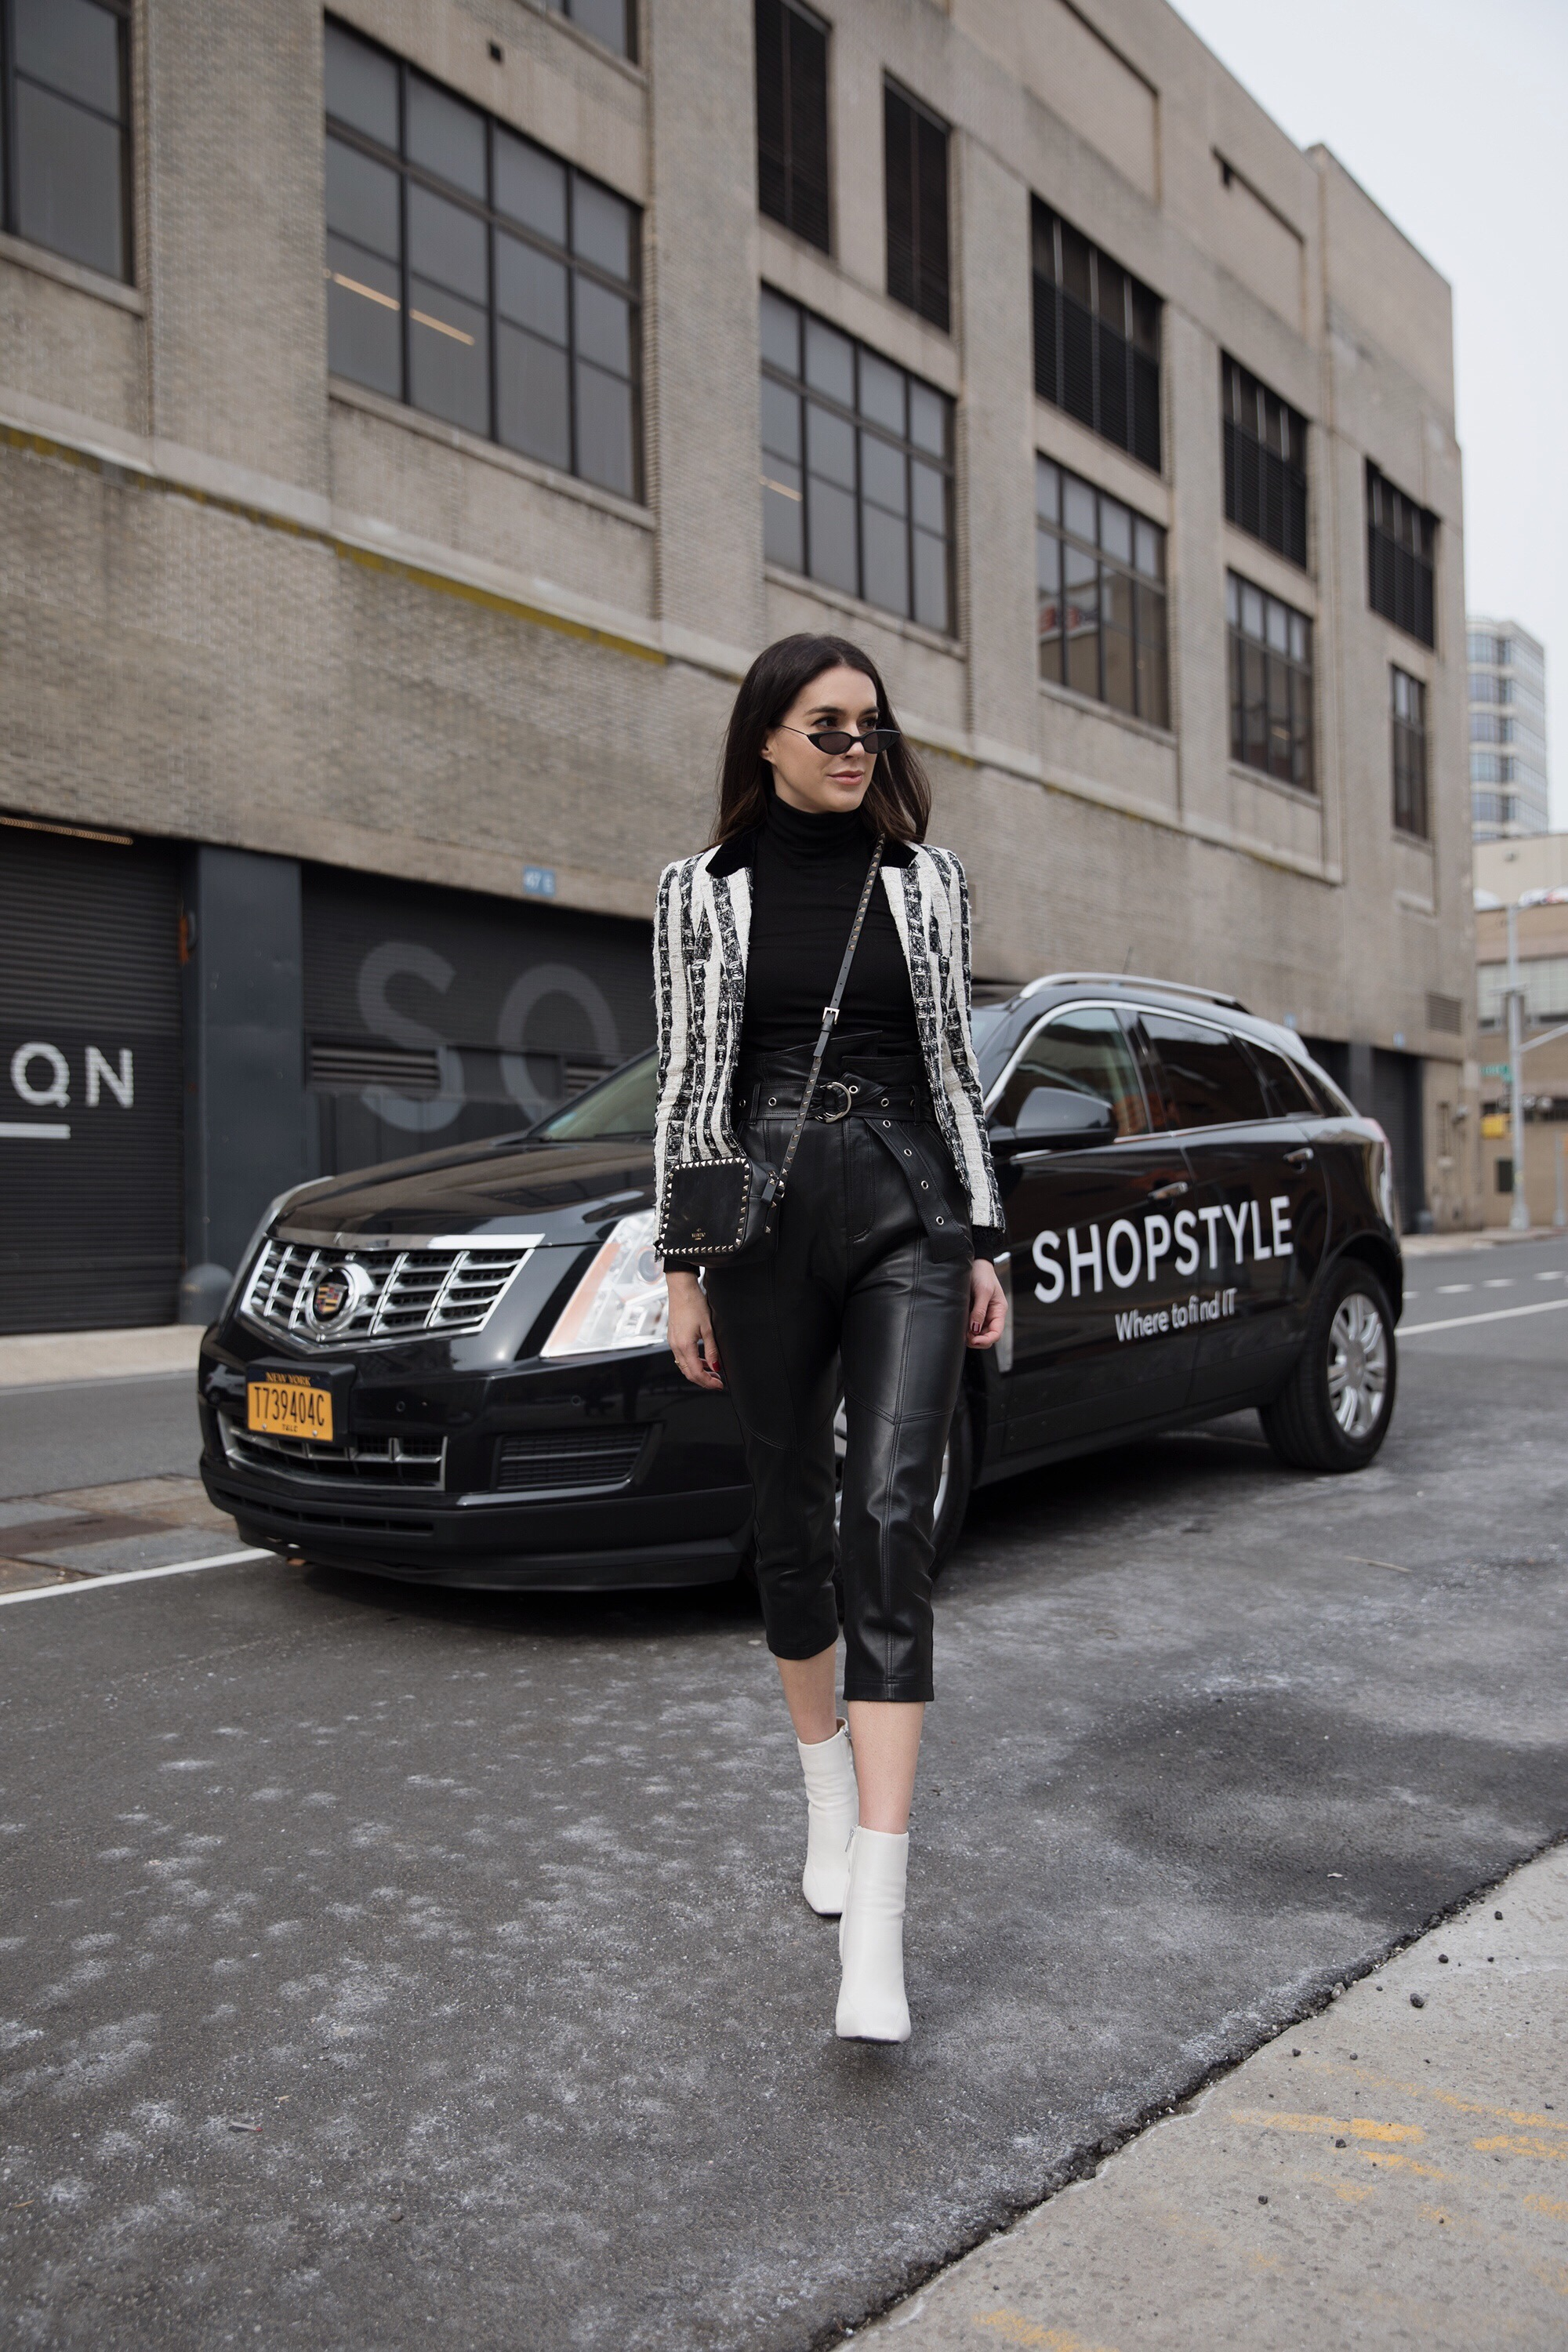 lyft x shopstyle thrifts and threads 1b